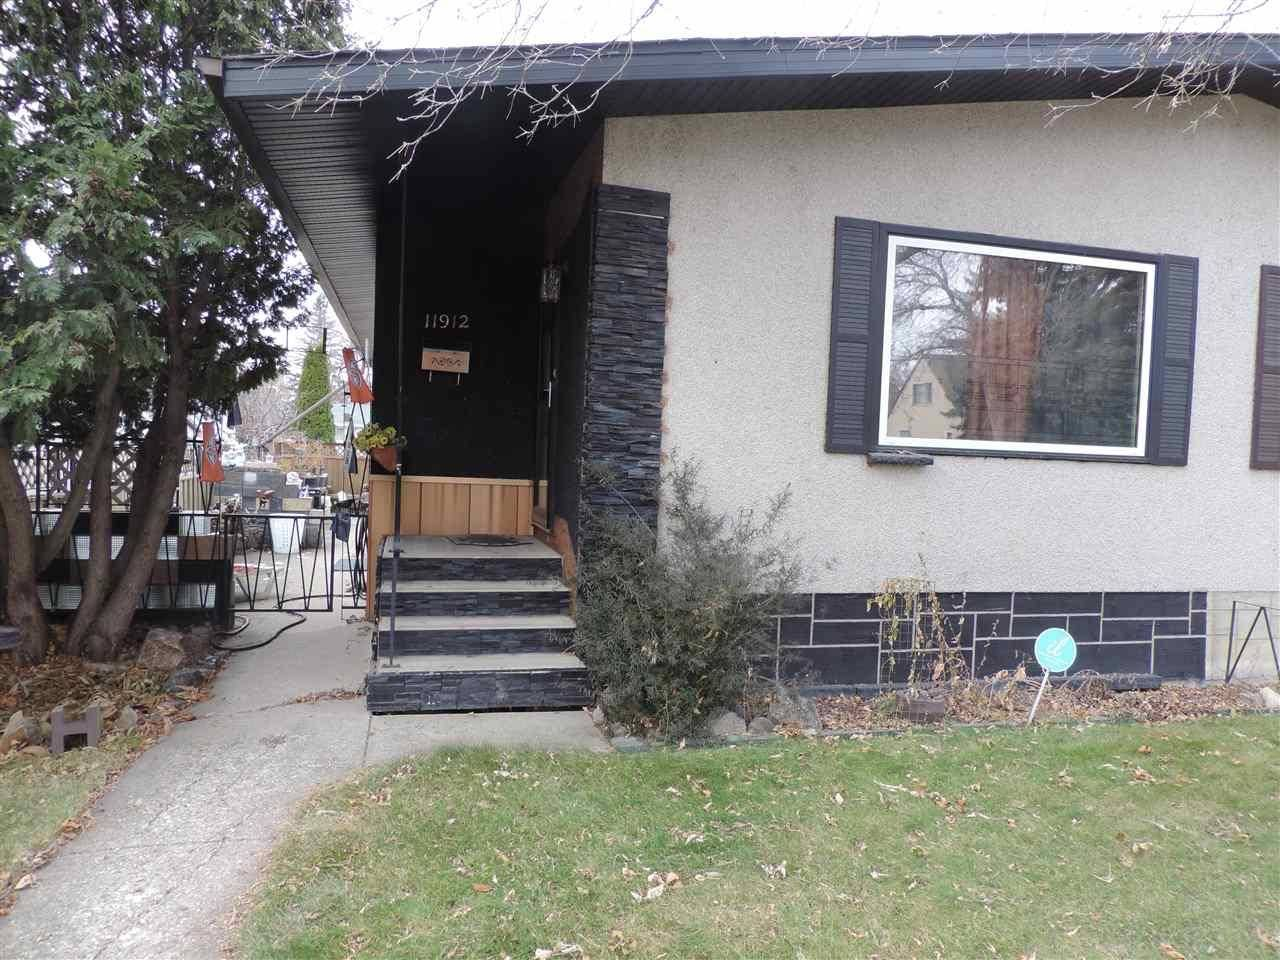 Townhouse for sale at 11912 47 St Nw Edmonton Alberta - MLS: E4179121